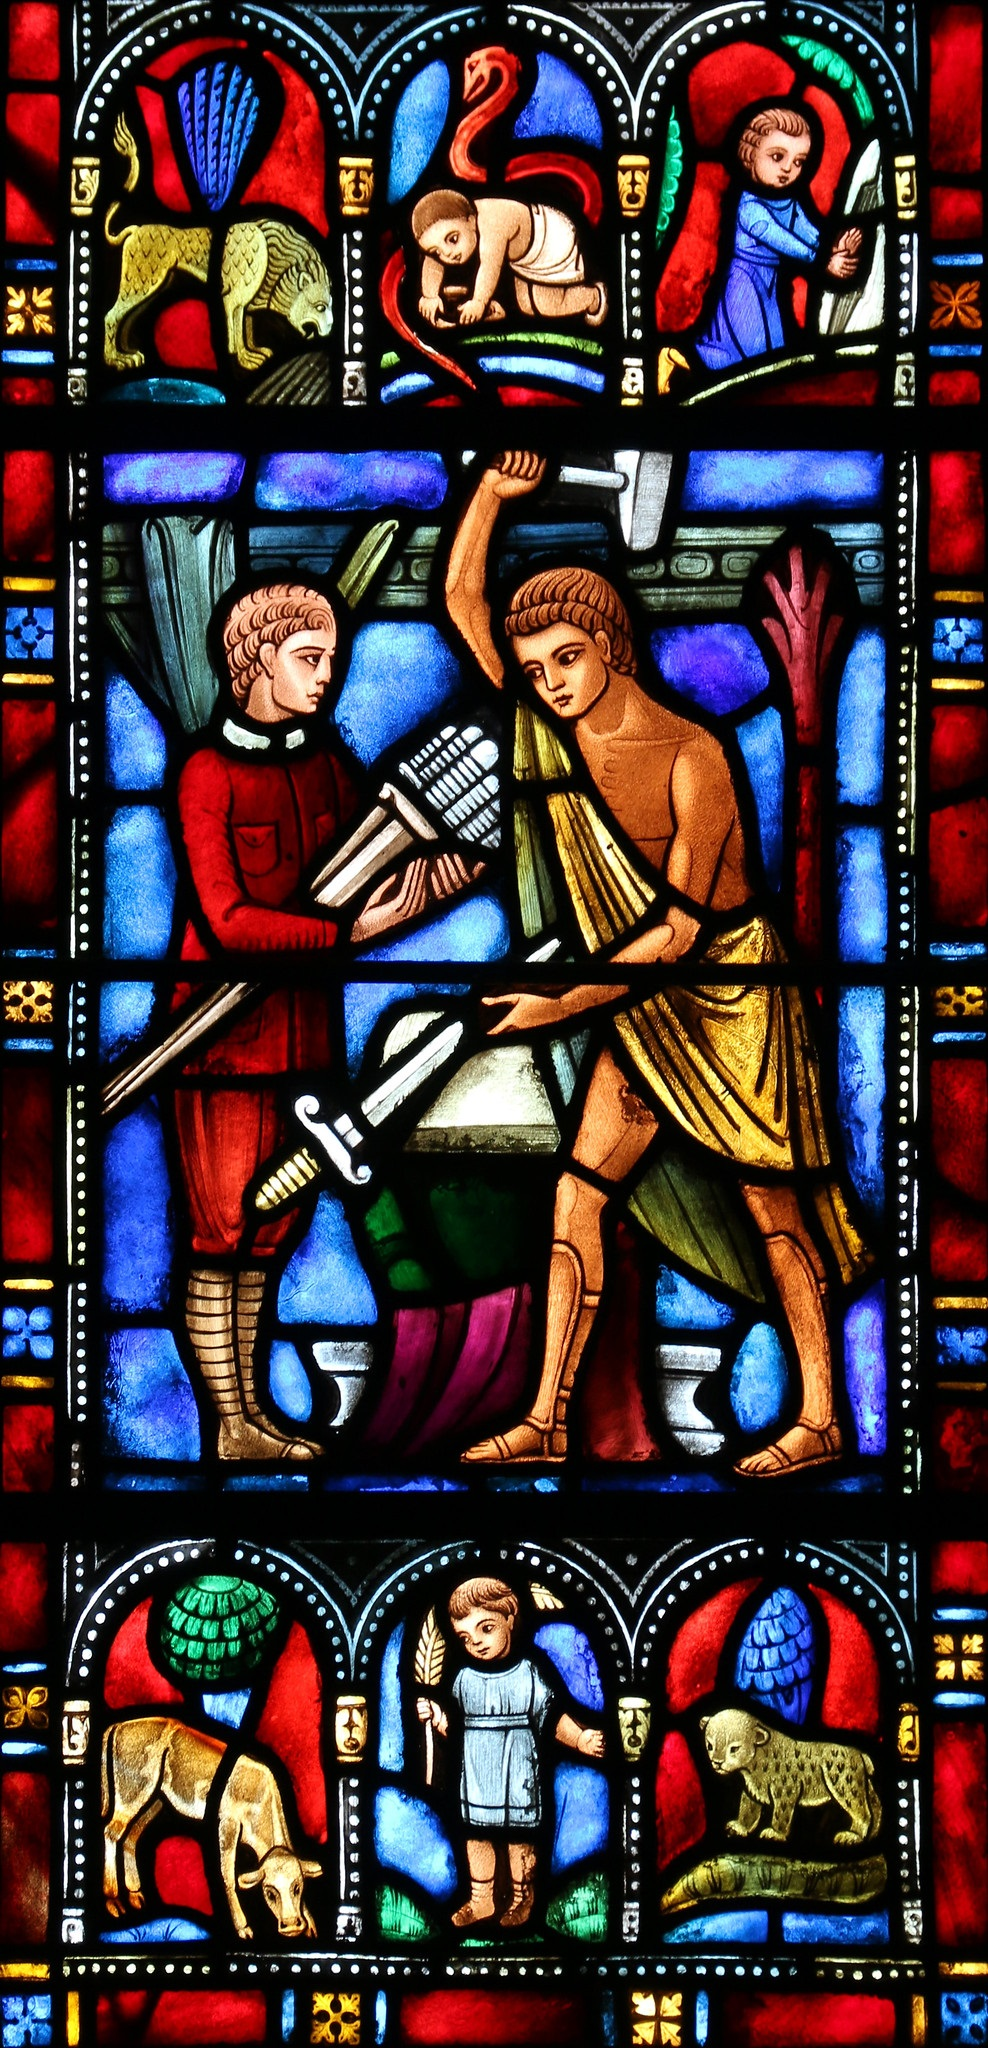 stained glass image of person with sword